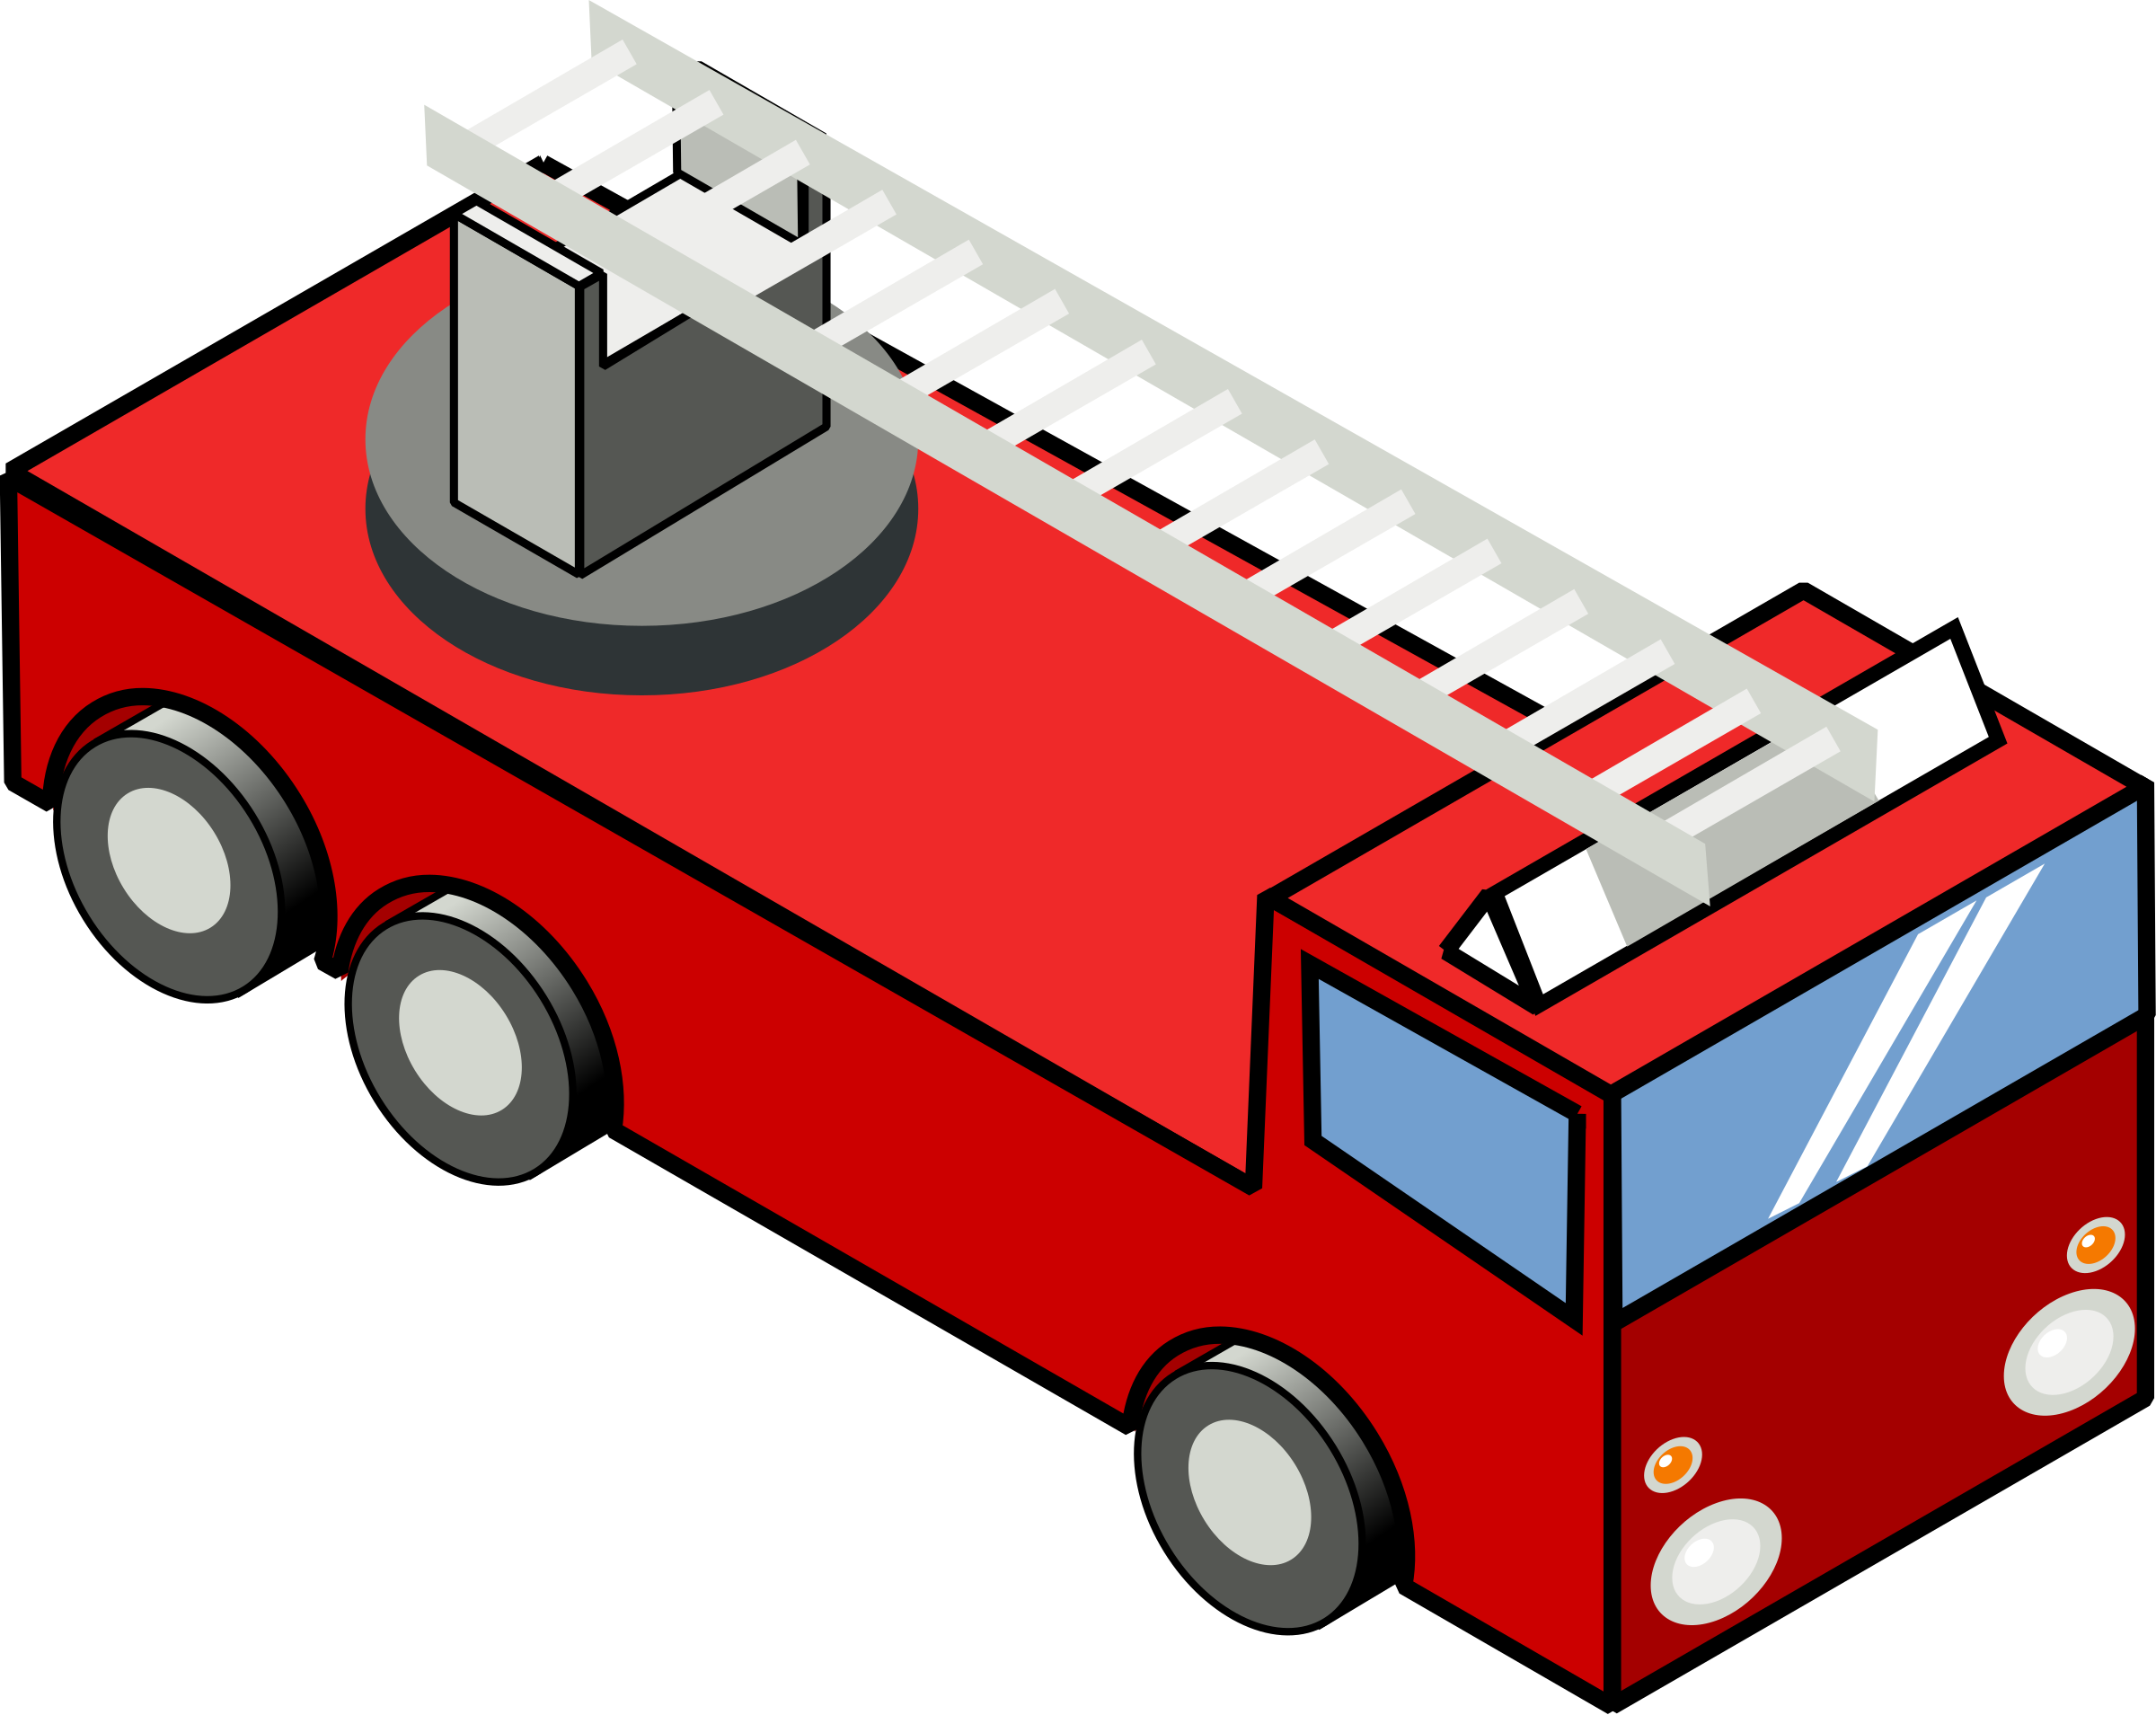 png library download Iso engine big image. Fire truck ladder clipart.